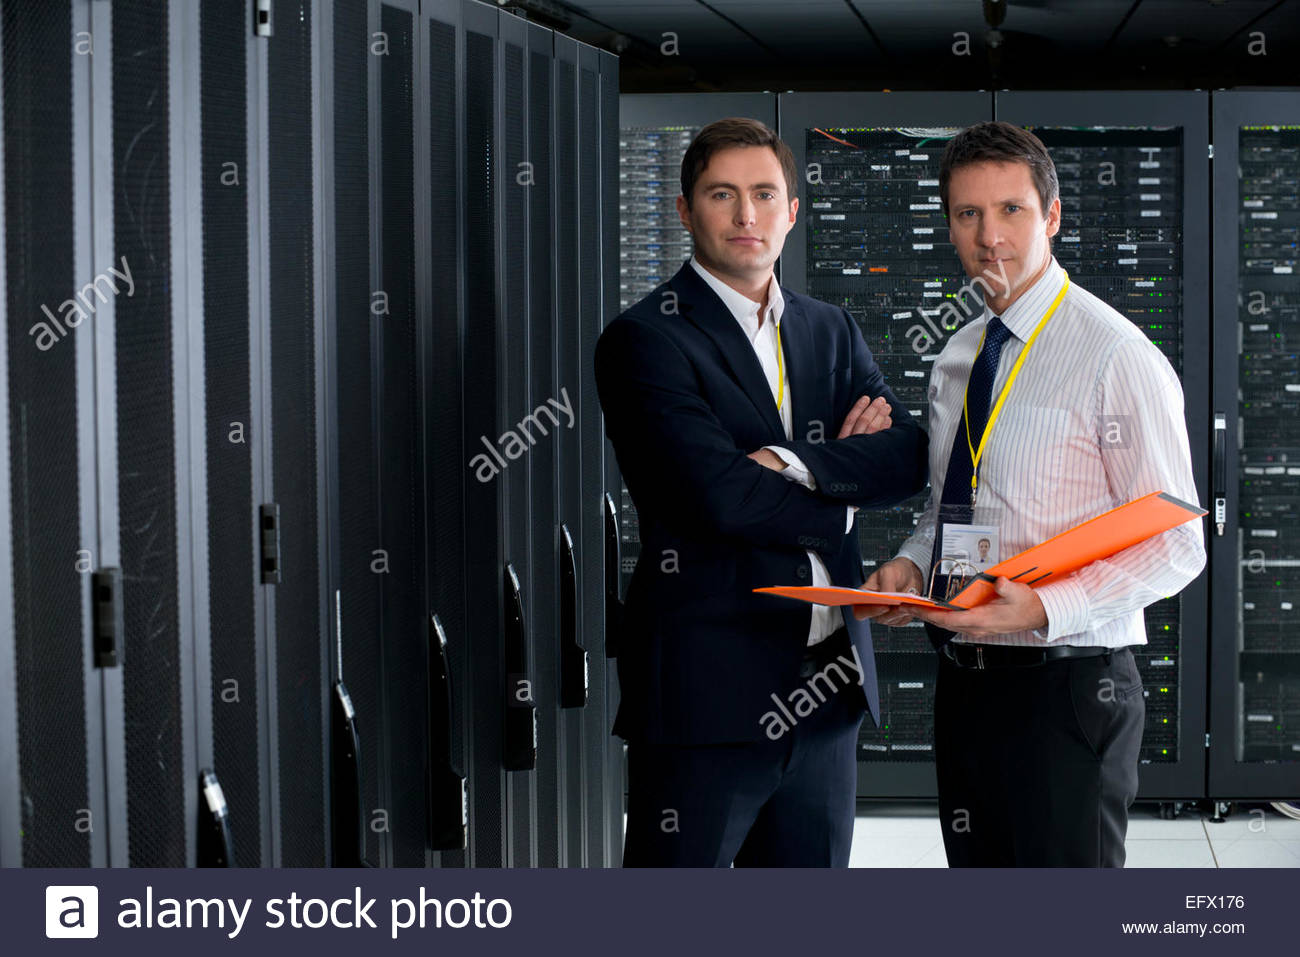 Two managers, looking at camera, in server room - Stock Image